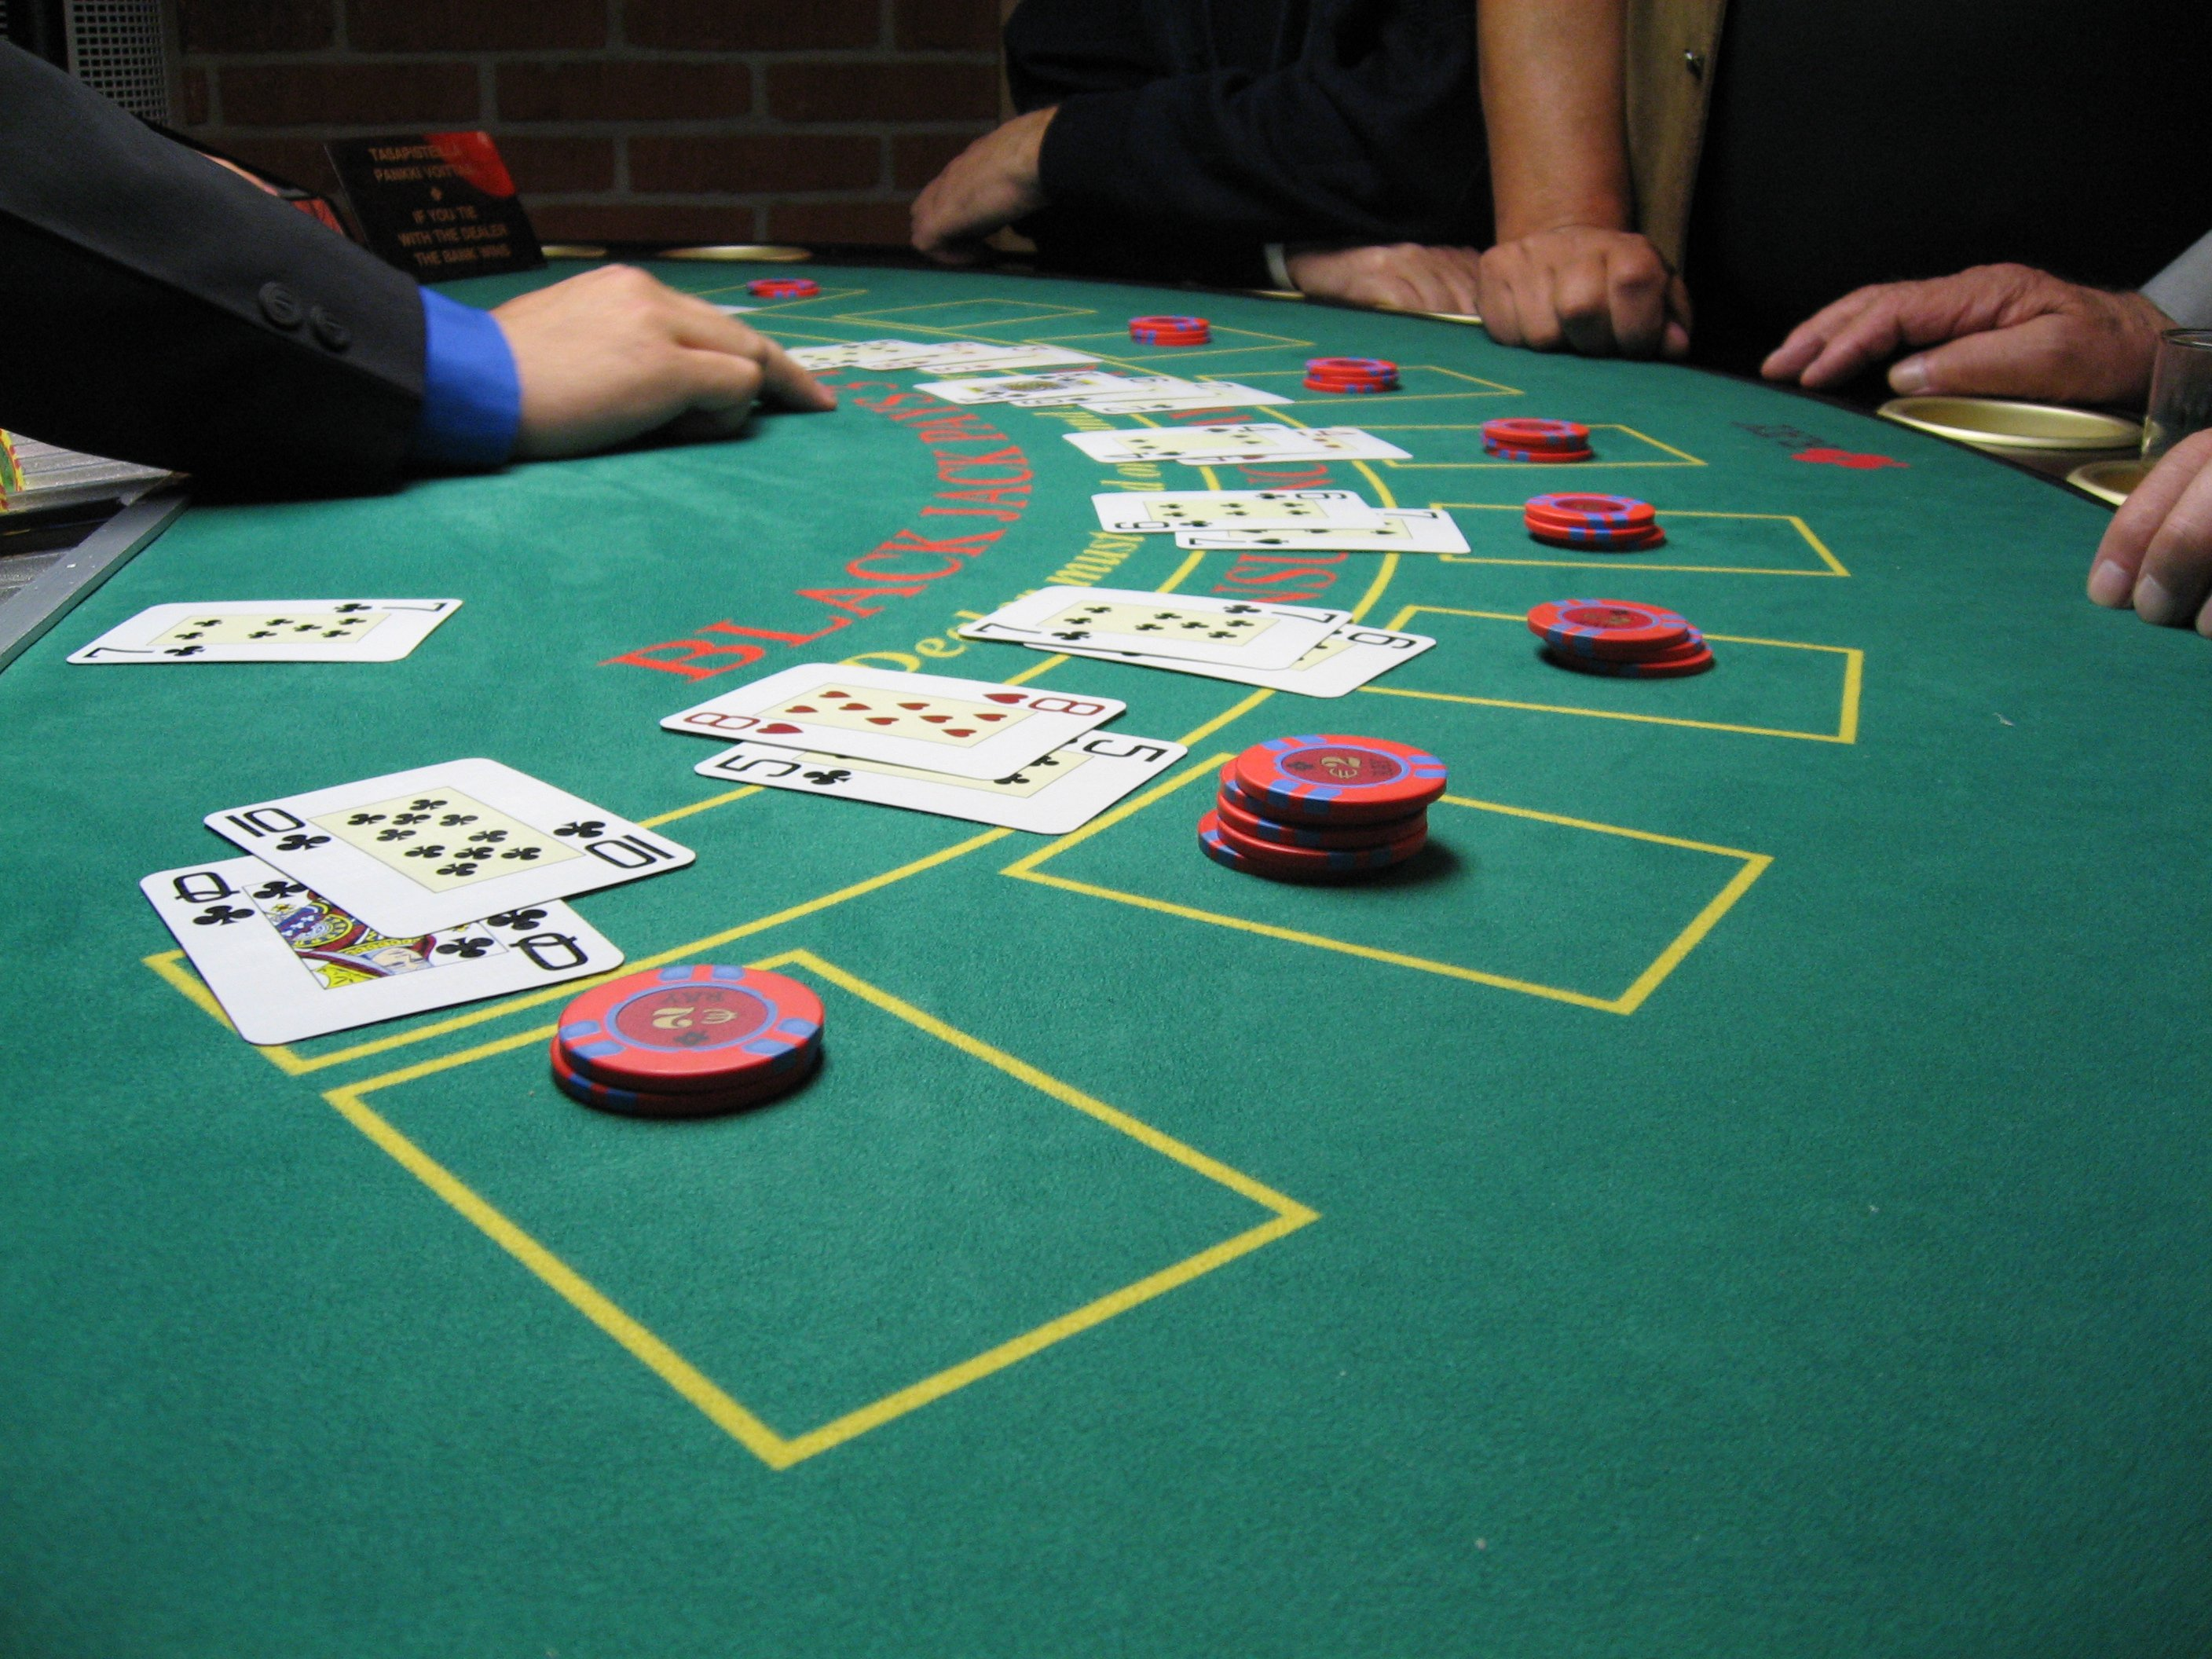 Tips to playing blackjack at the casino